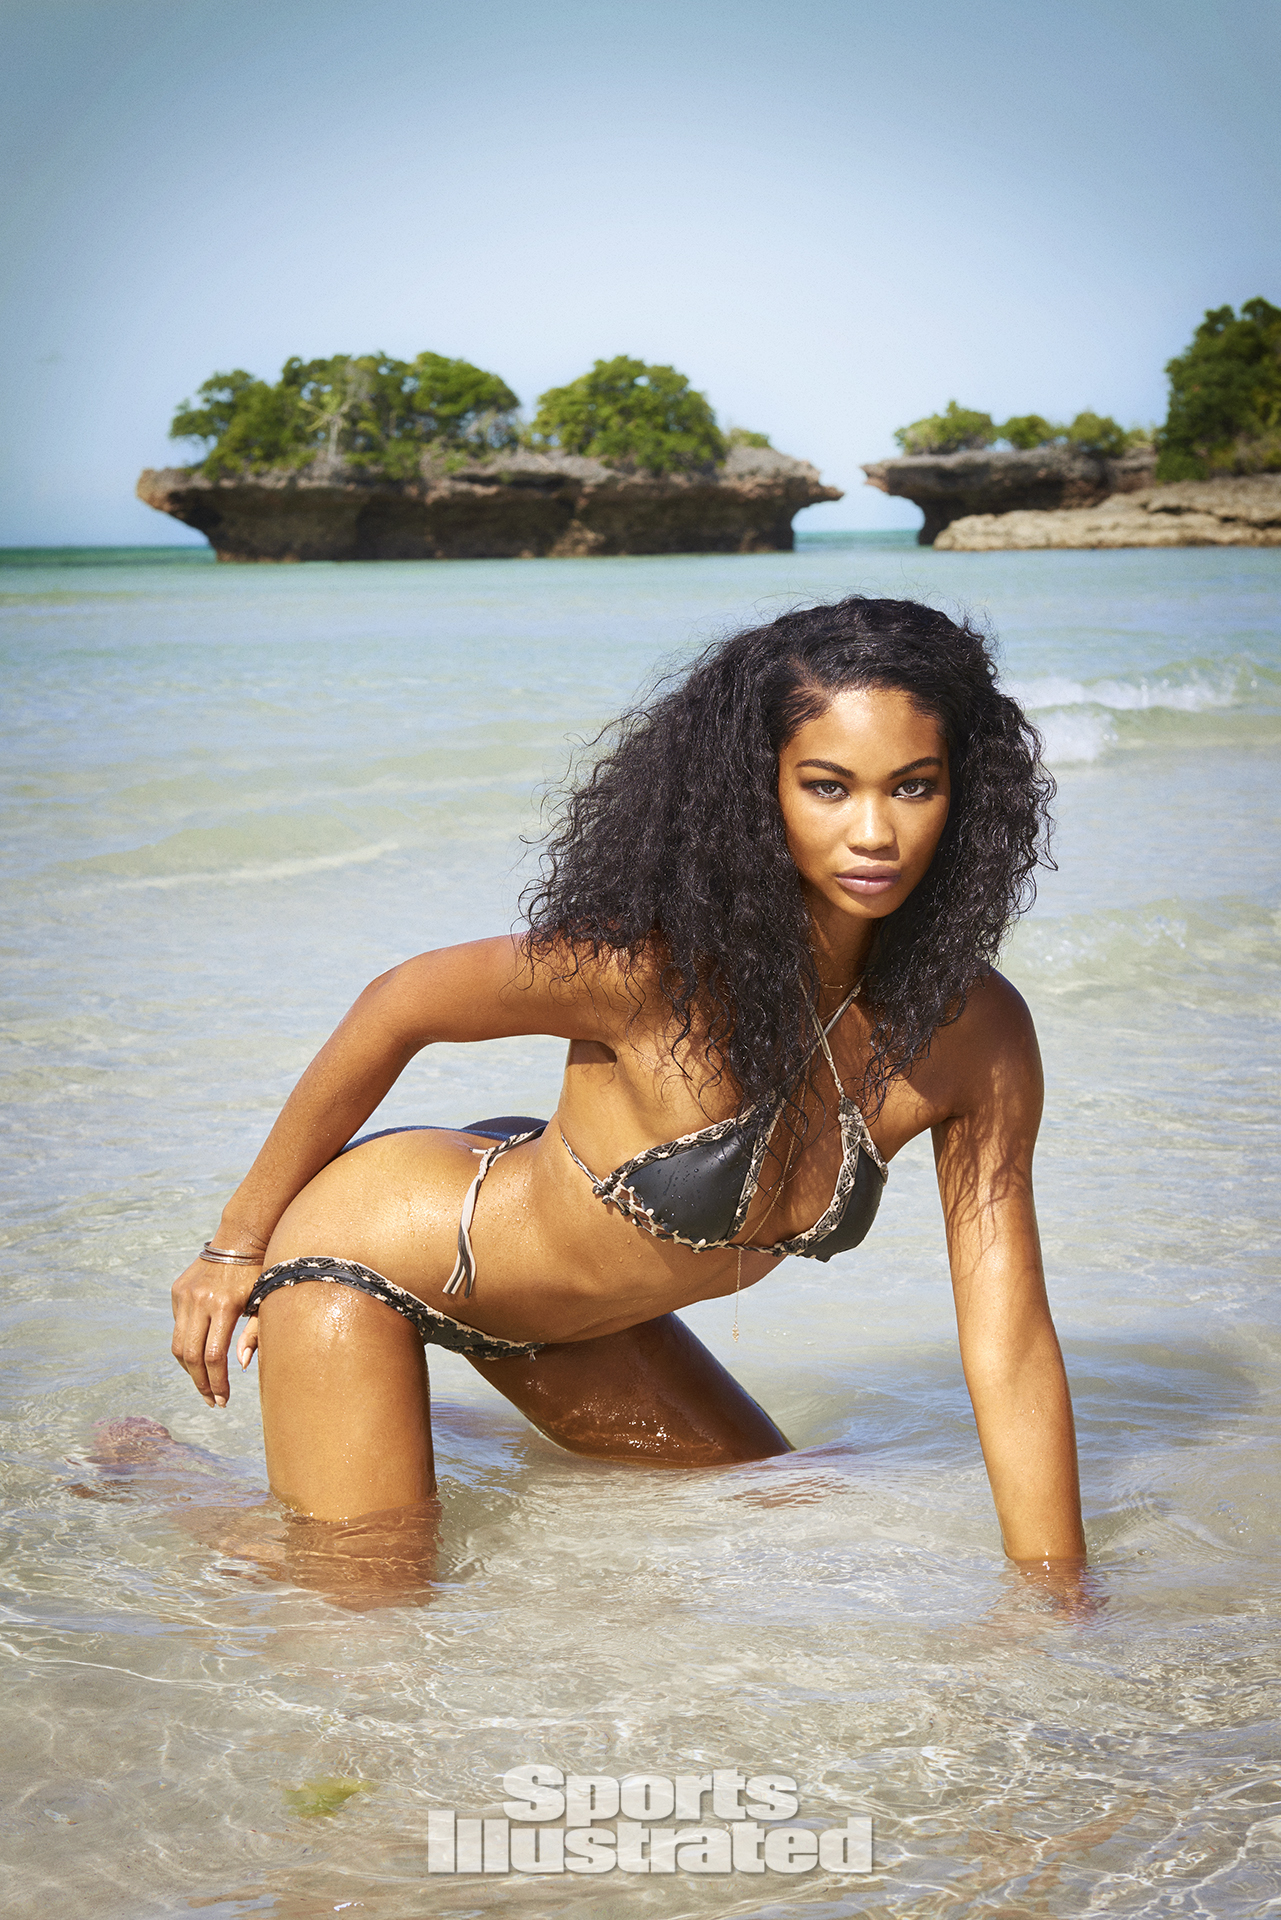 Chanel Iman was photographed by Ruven Afanador in Zanzibar. Swimsuit by INDAH.